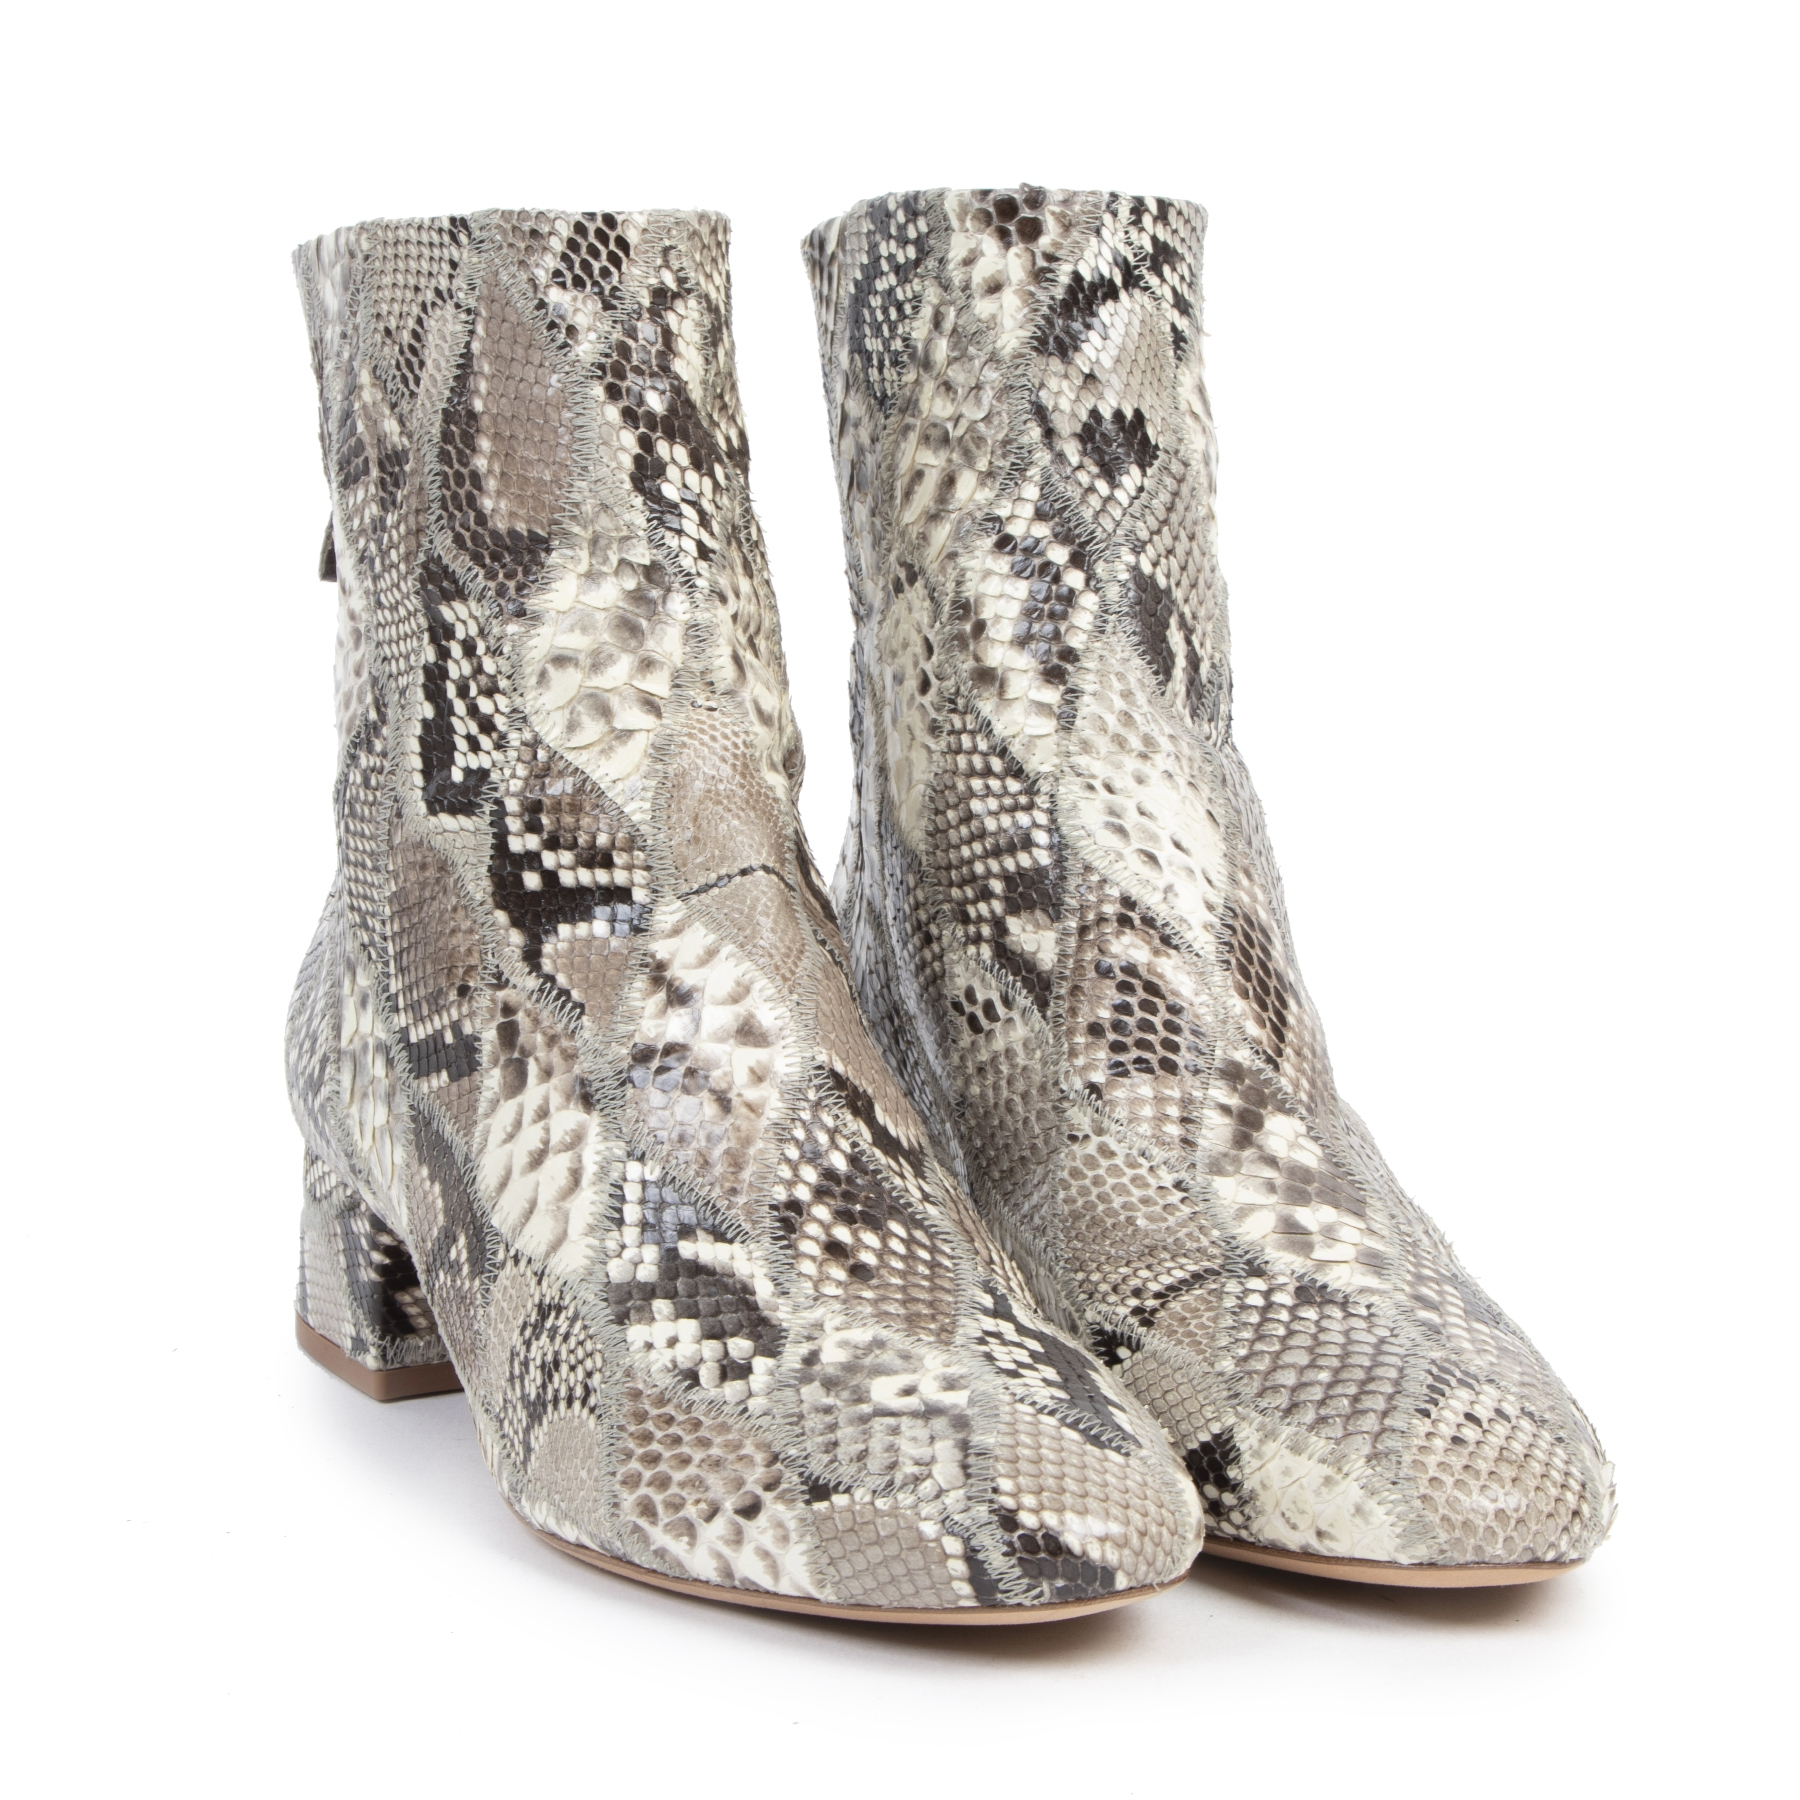 Authentic secondhand Birman Python Leather Boots - Size 38 designer shoes fashion luxury vintage webshop safe secure online shopping designer high end brands